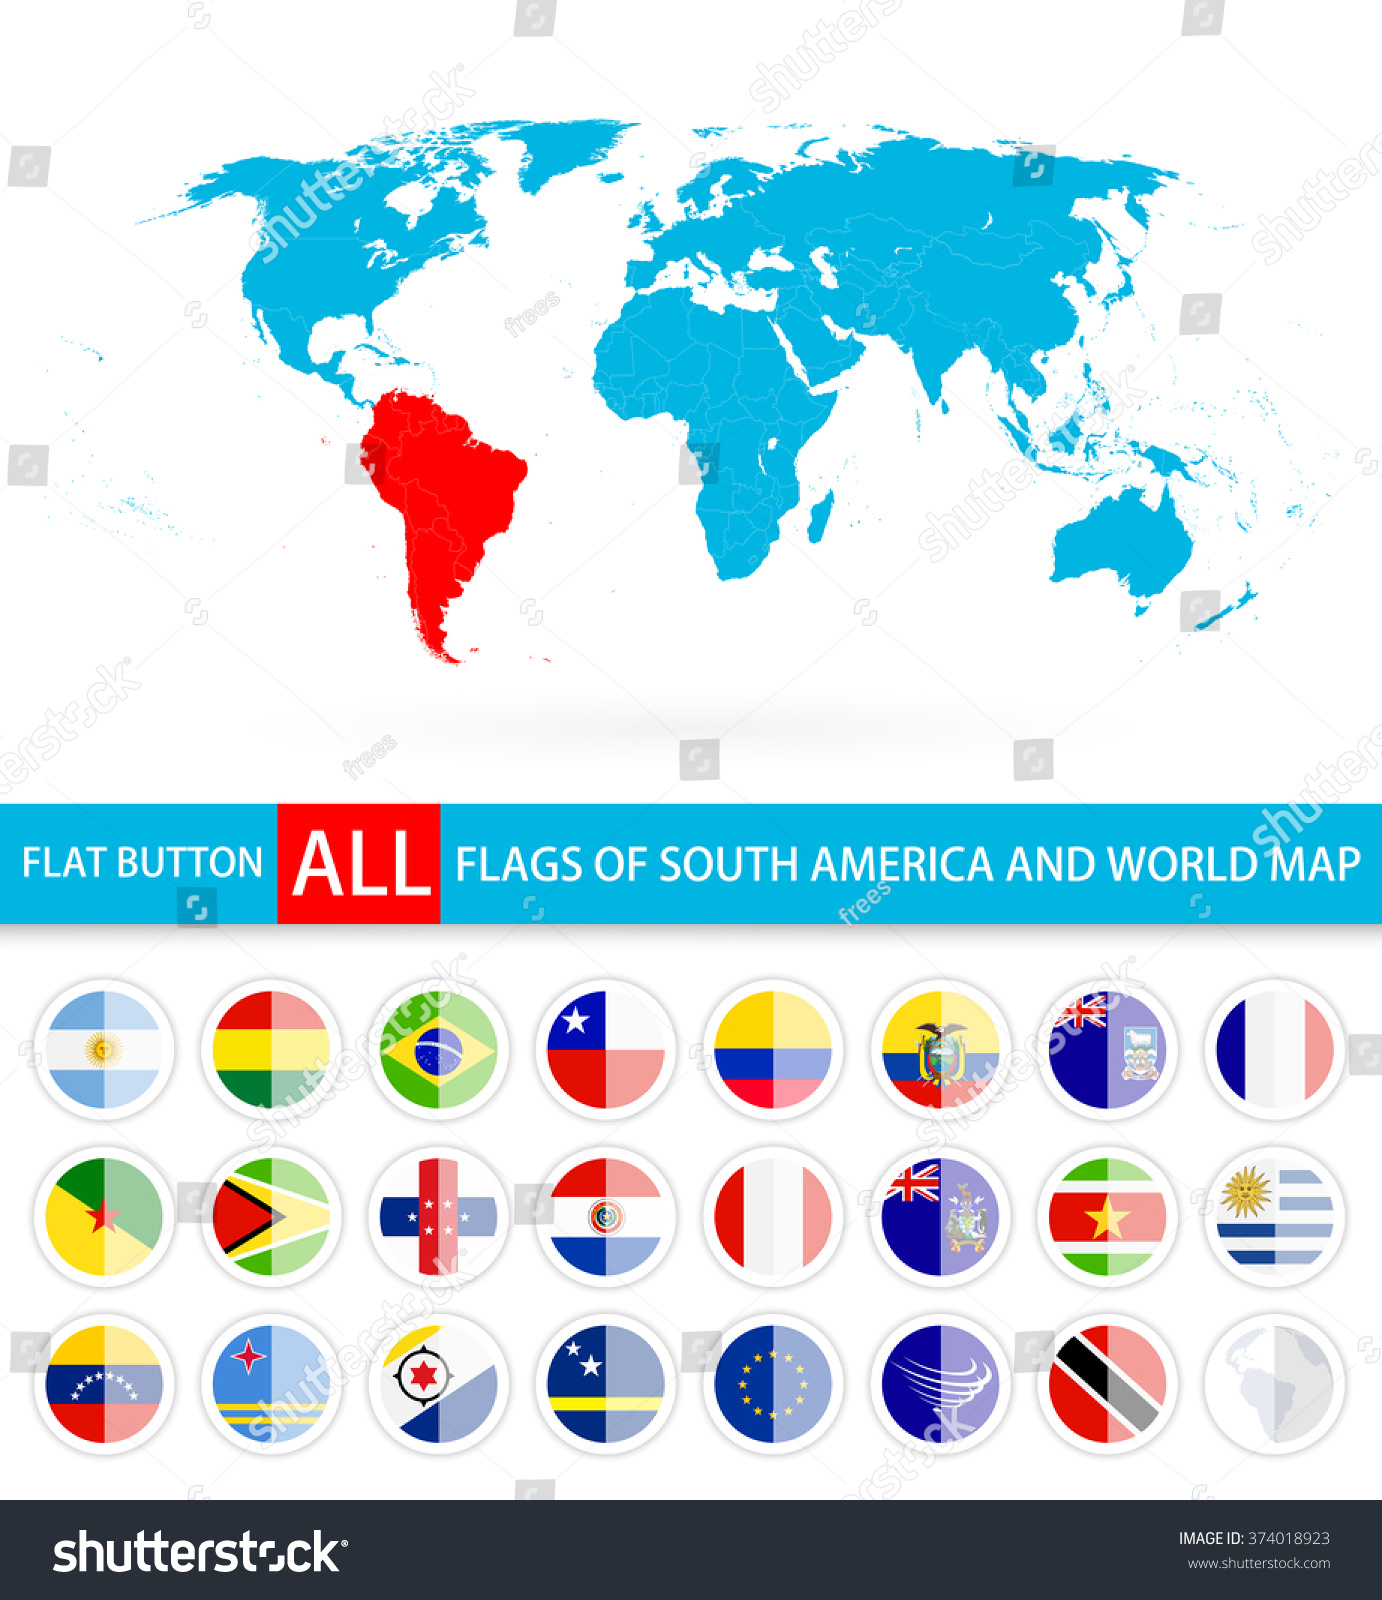 Flat Round Flags Of South America Complete Set And World Map Flag - South america map and flags